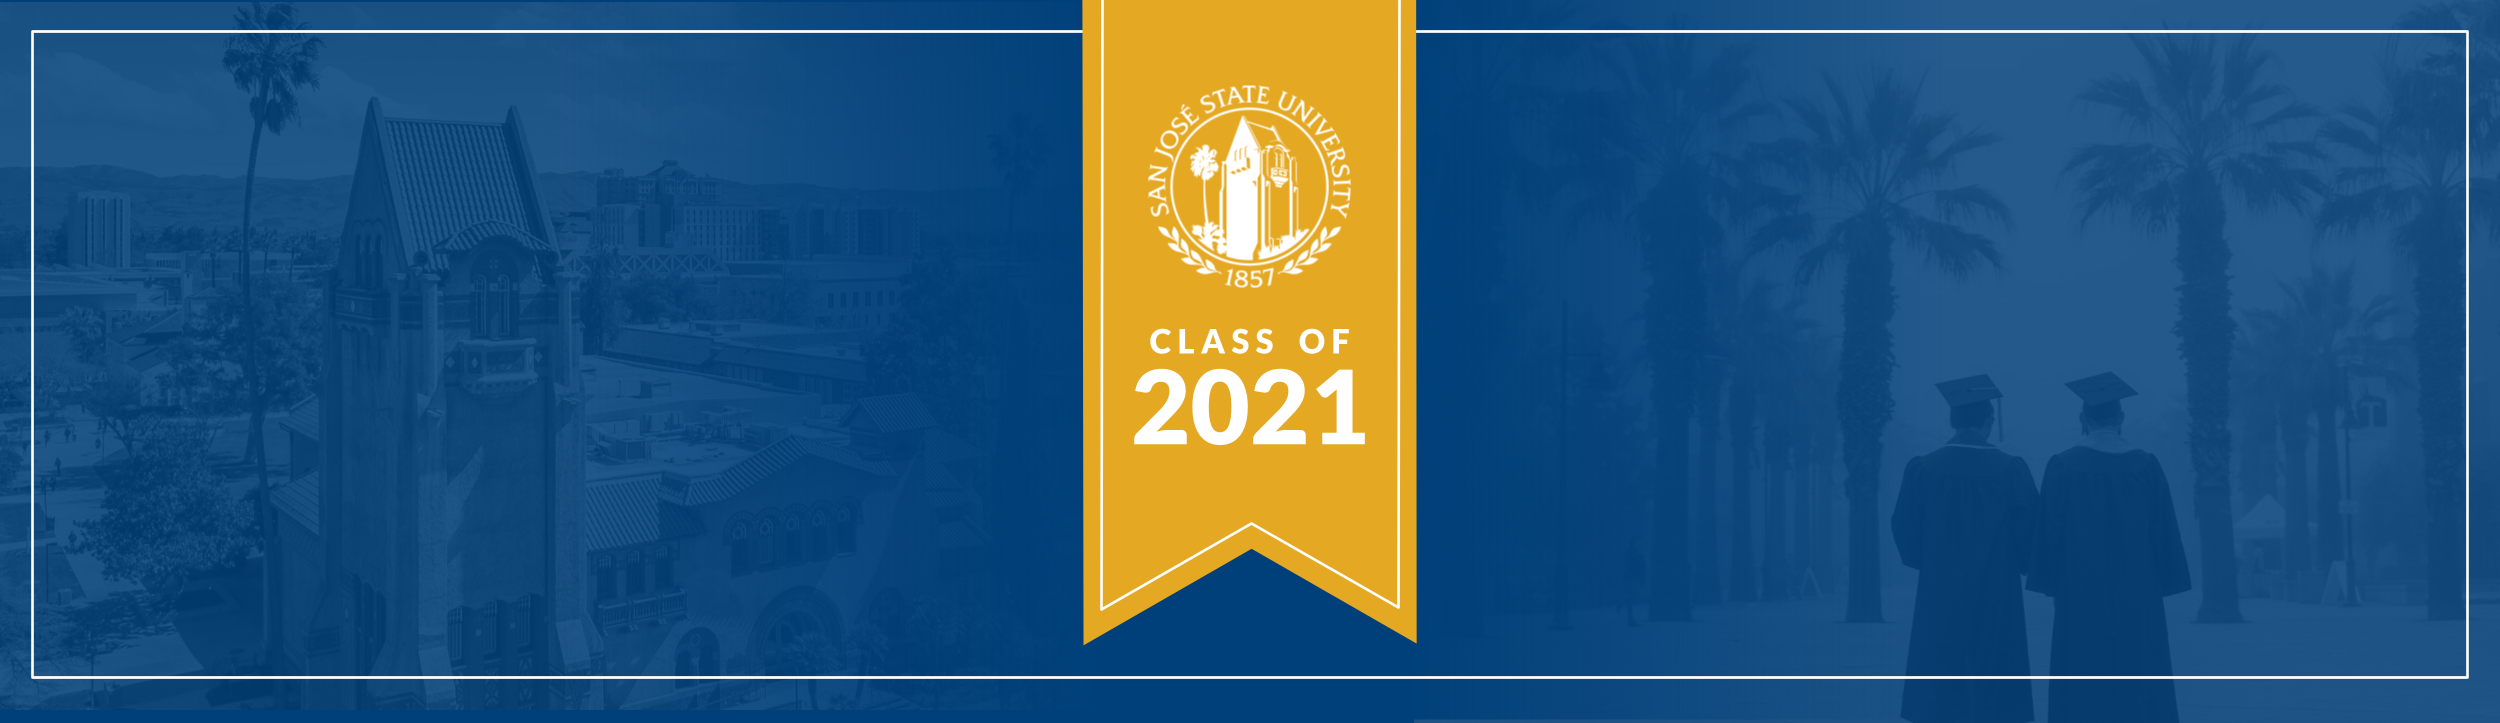 Hero image for Fall 2021 commencement